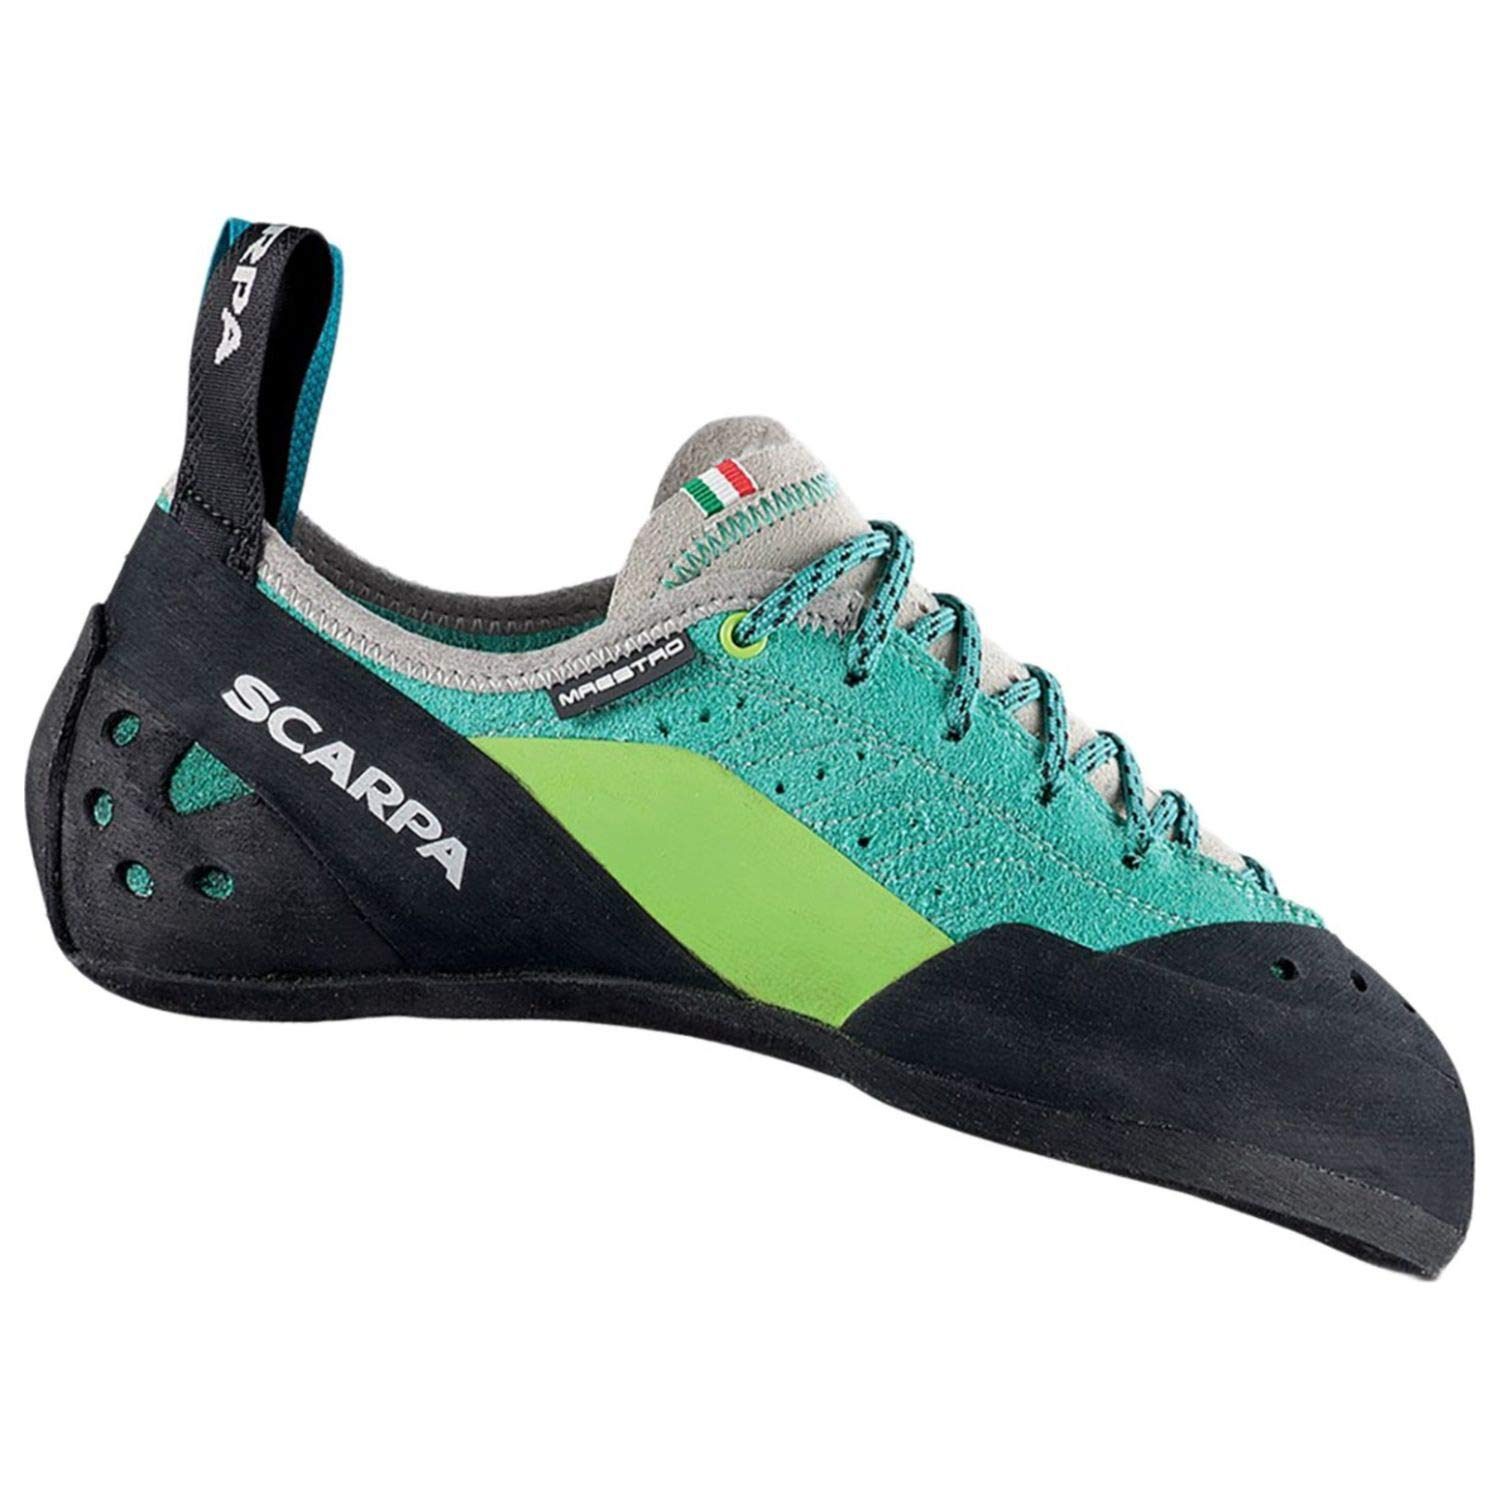 SCARPA Maestro ECO Climbing Shoe - Women's Green Blue 36.5 by SCARPA